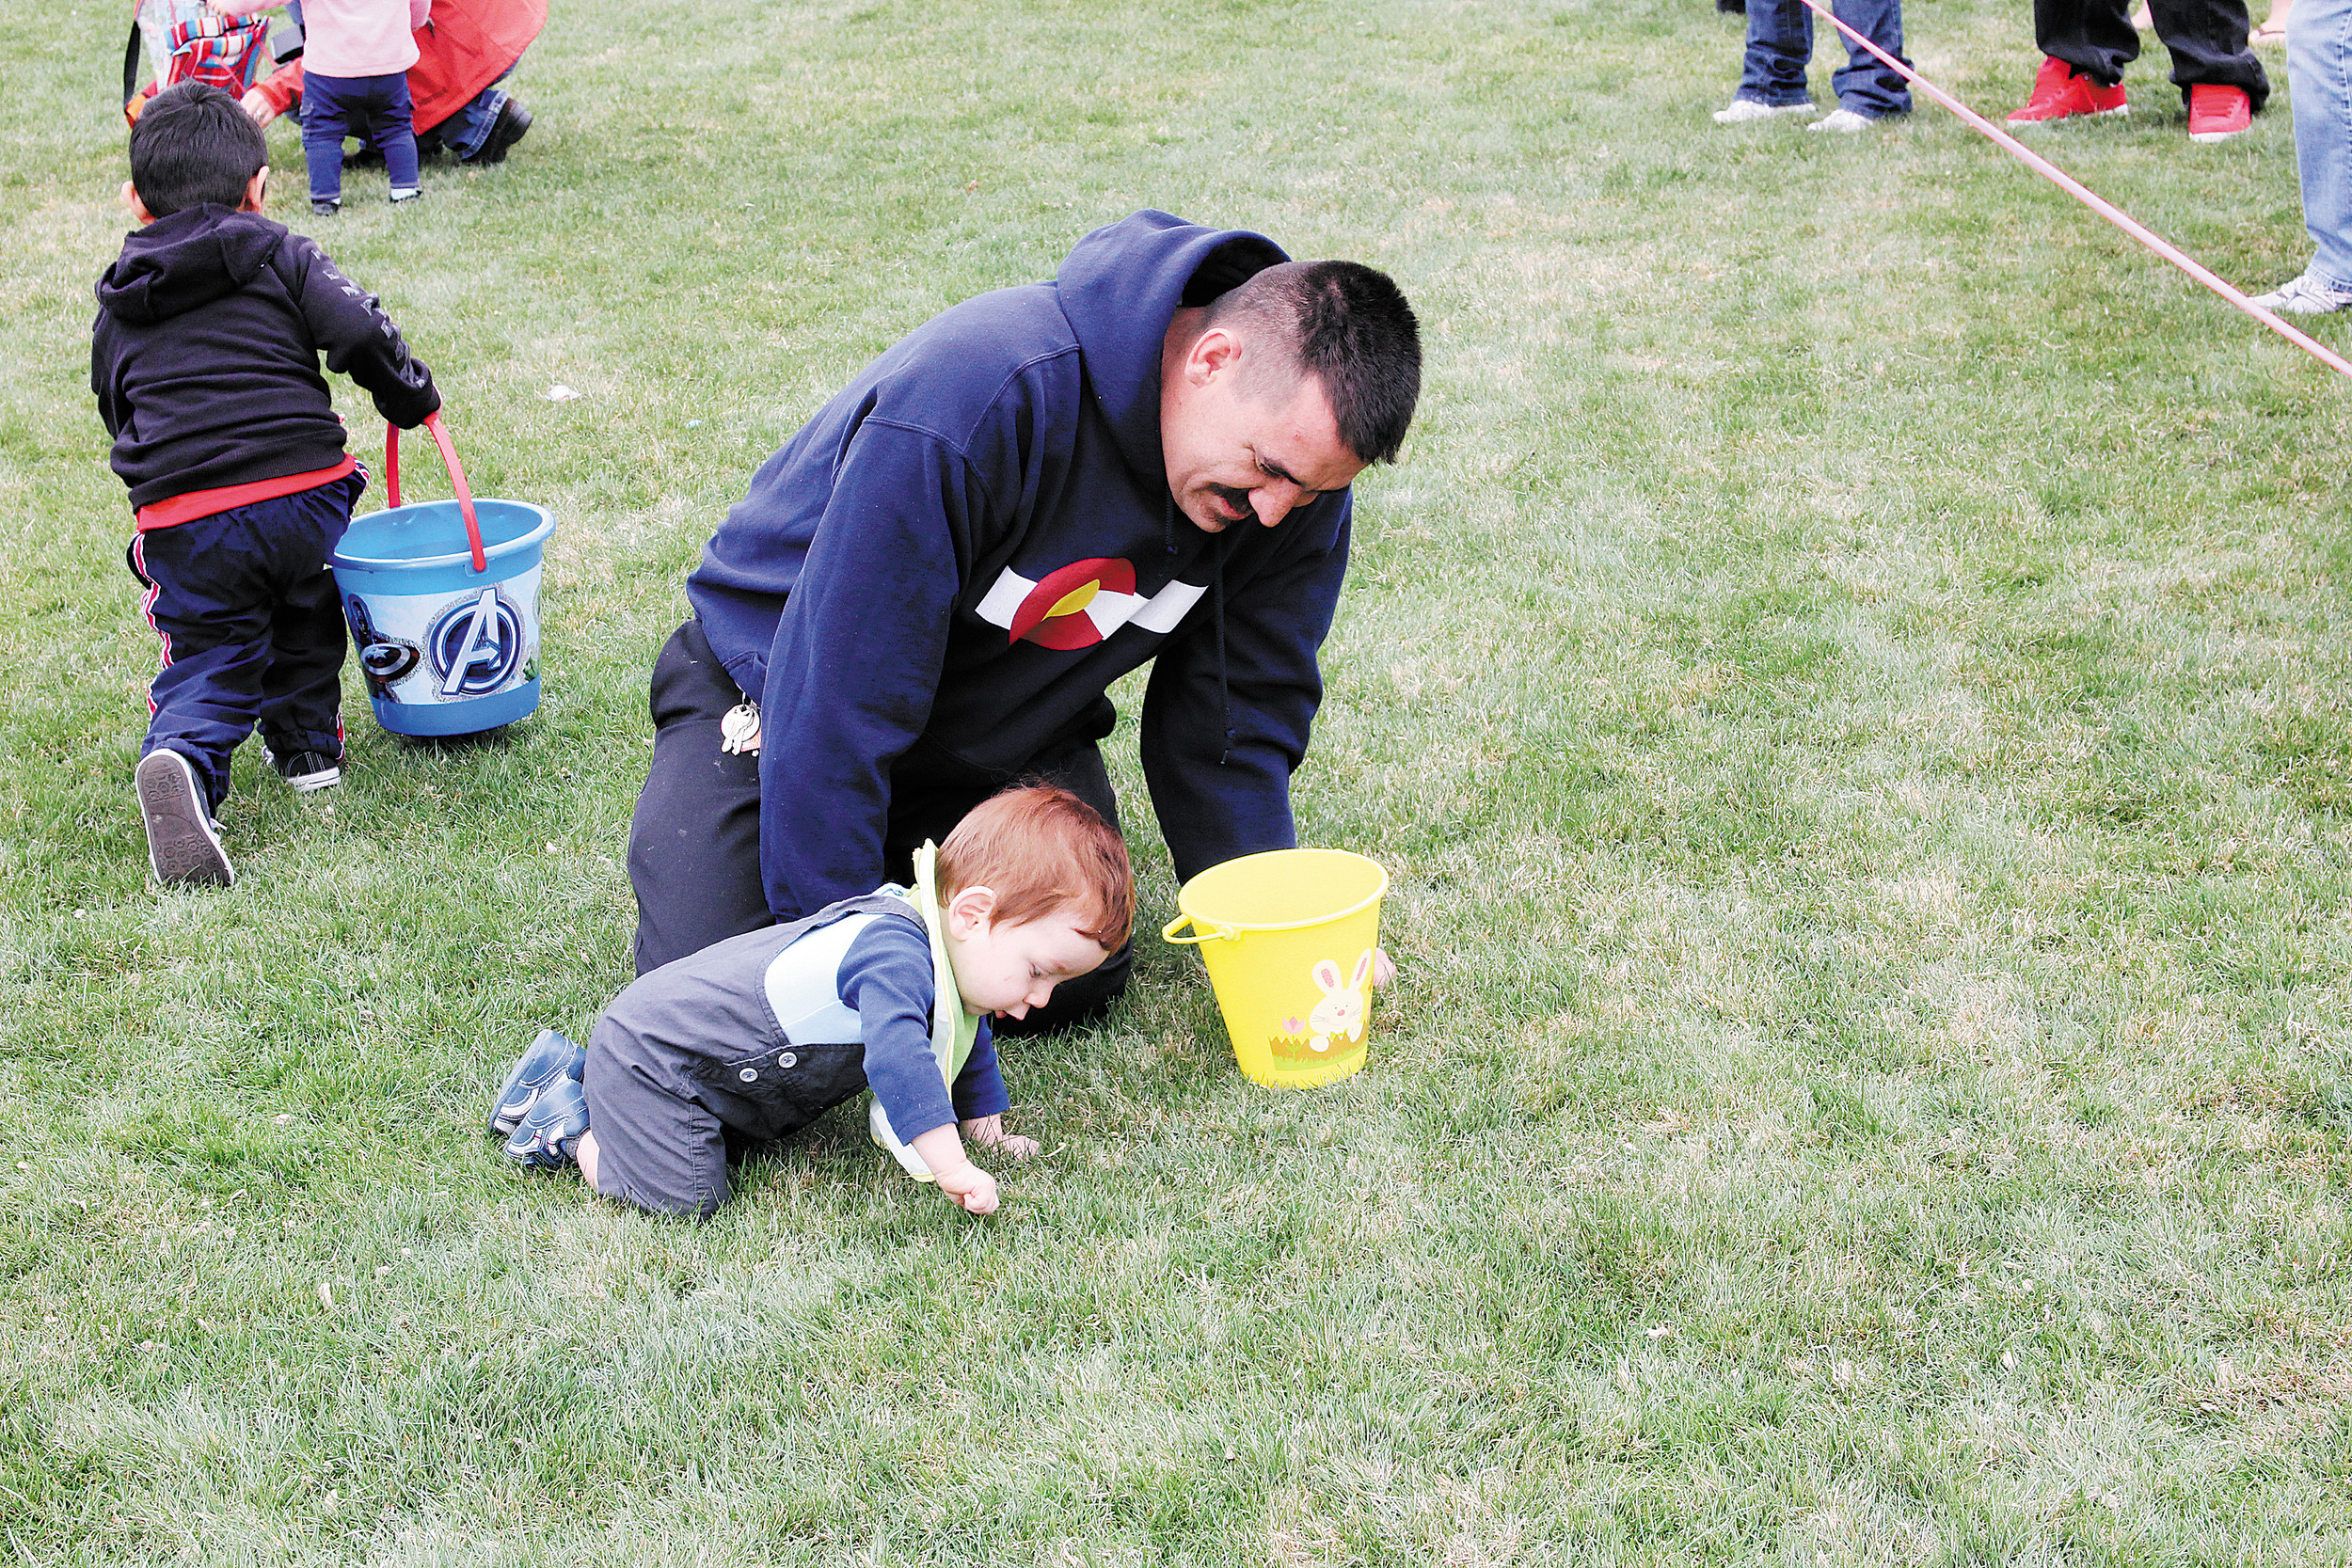 Pedro Iniguez helps his young son Eprain pick up a piece of candy. The Iniguez family joined hundreds who attended Englewood's April 12 Great Egg Scramble. Photo by Tom Munds